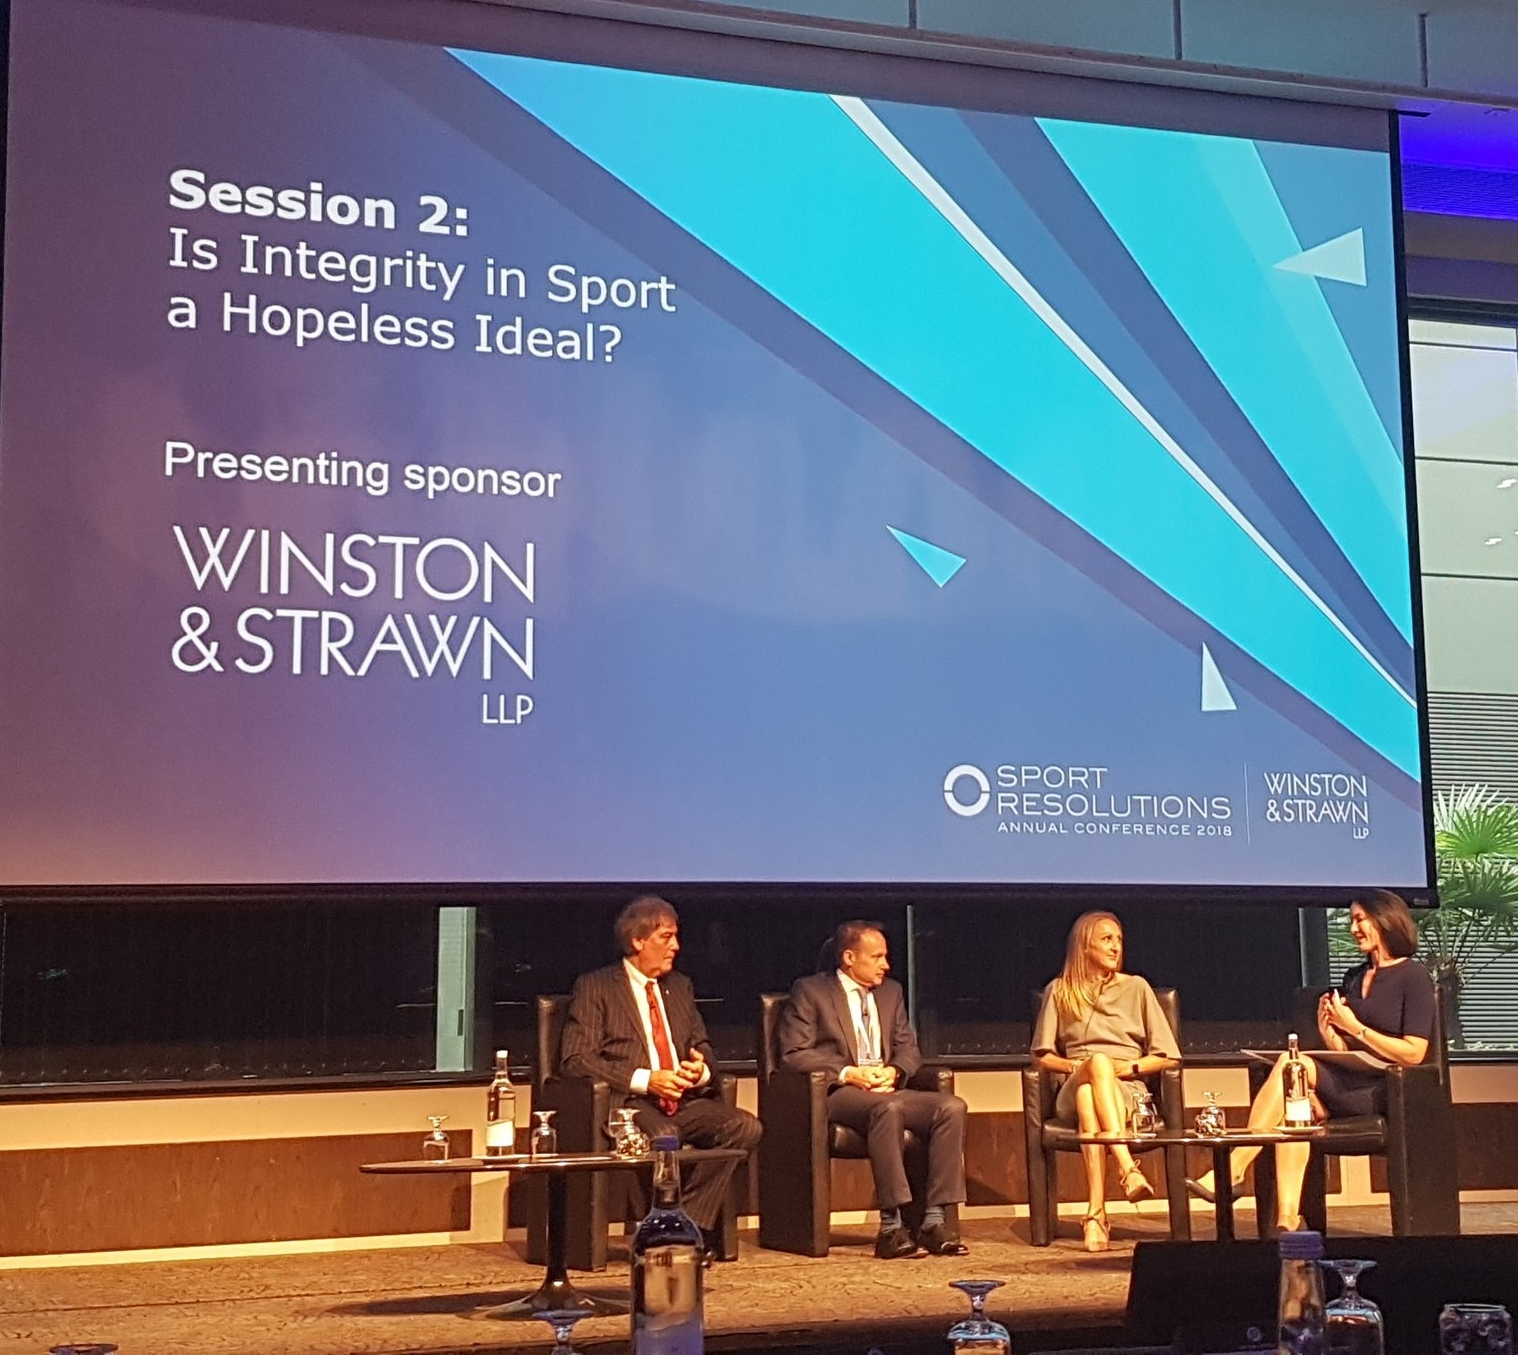 Chairing a panel at the Sport Resolutions Annual Conference. Guests incl Paula Radcliffe (r)